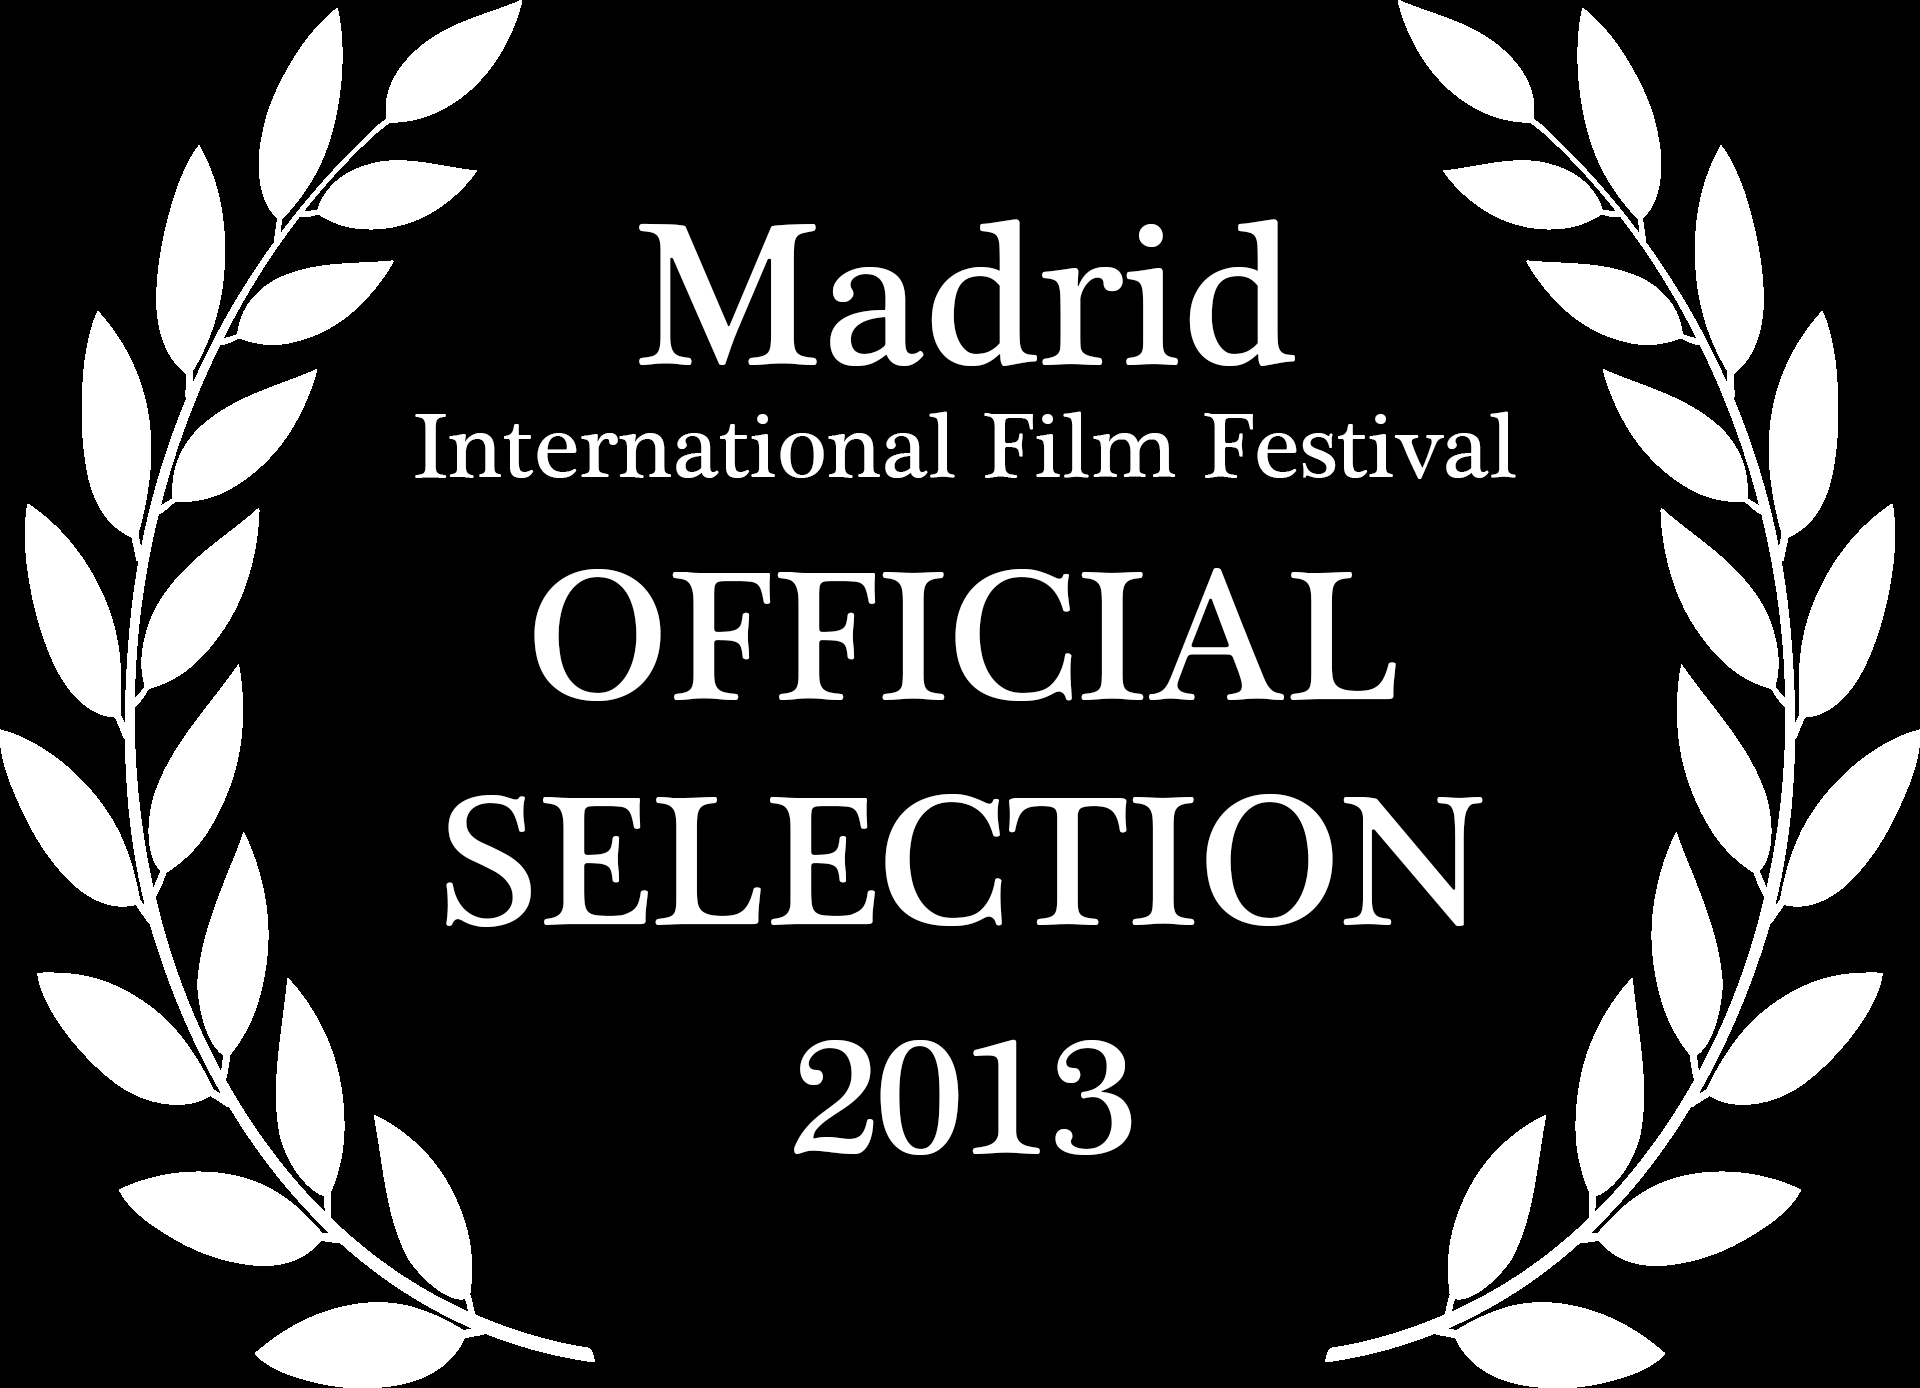 Official-Selection-Laurel-1.jpg